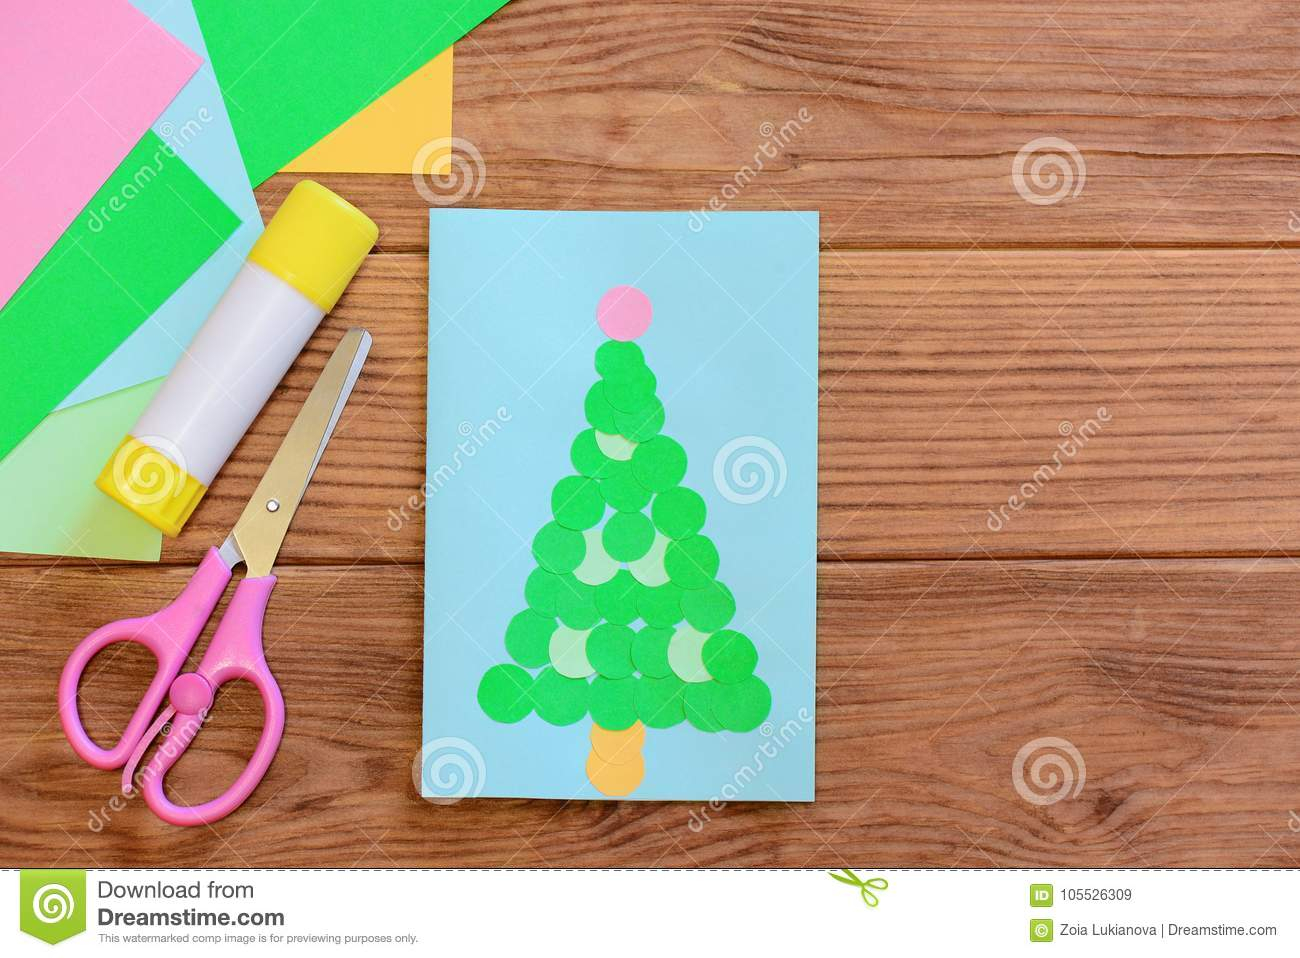 Easy Paper Craft Ideas For Kids Winter Holiday Card Merry Christmas Greeting Card Colored Paper